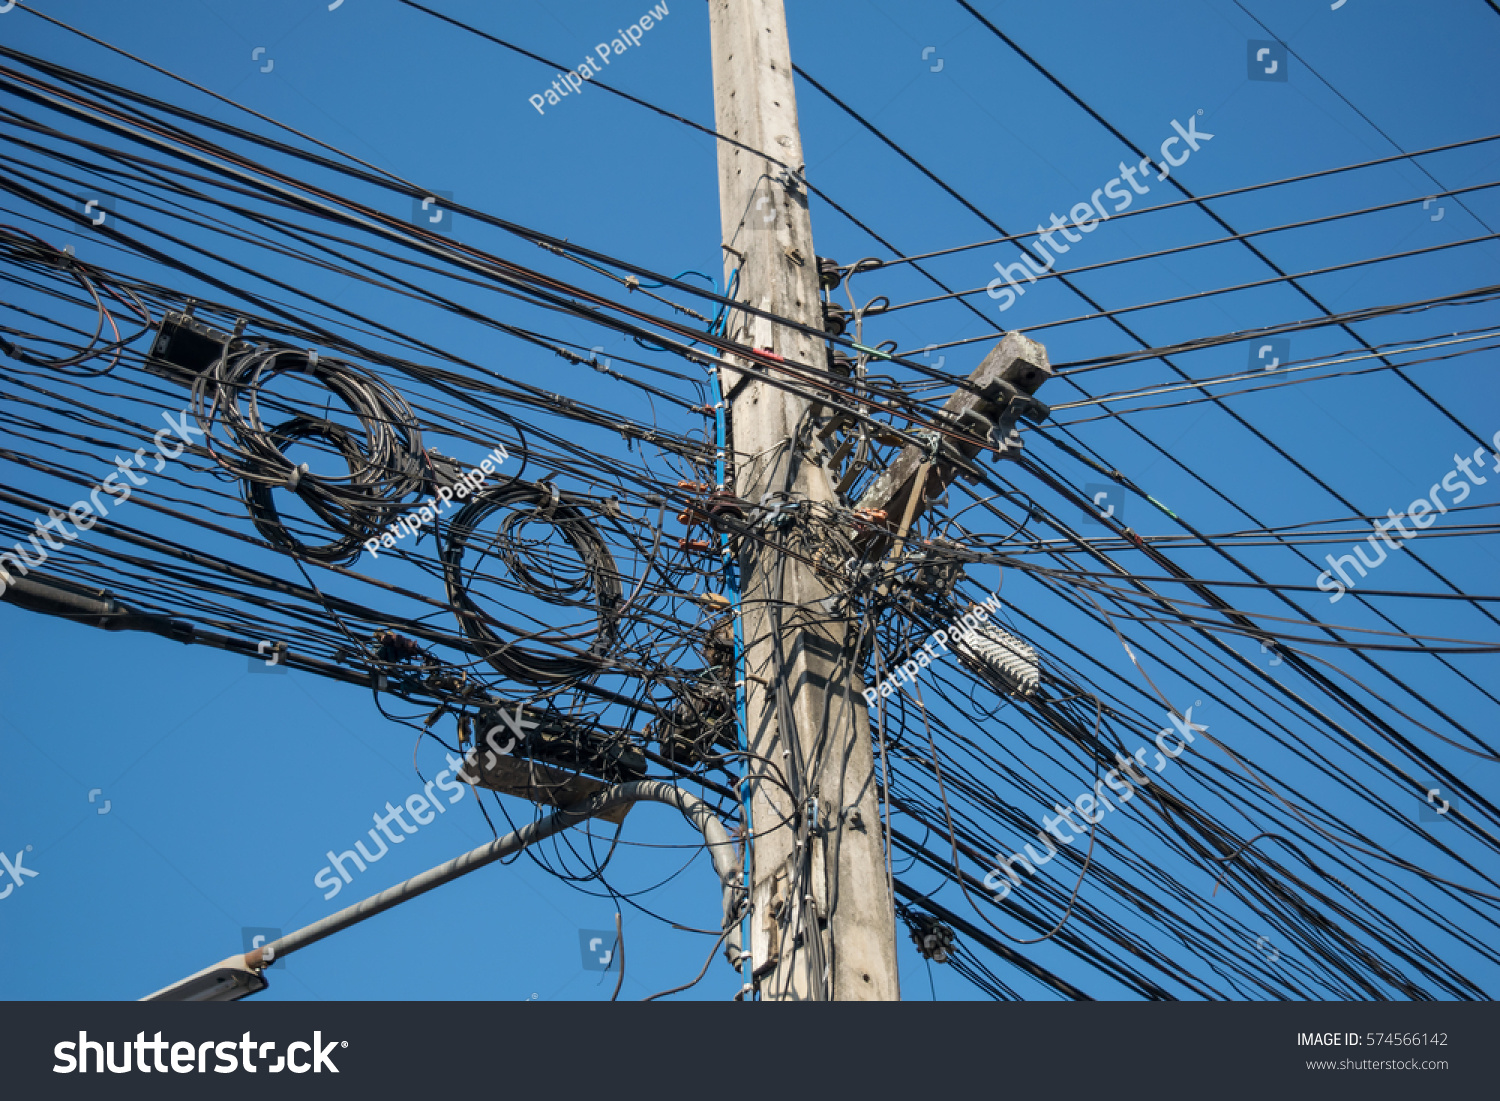 Many Wires Messy With Power Line Cables Ez Canvas Wiring Id 574566142